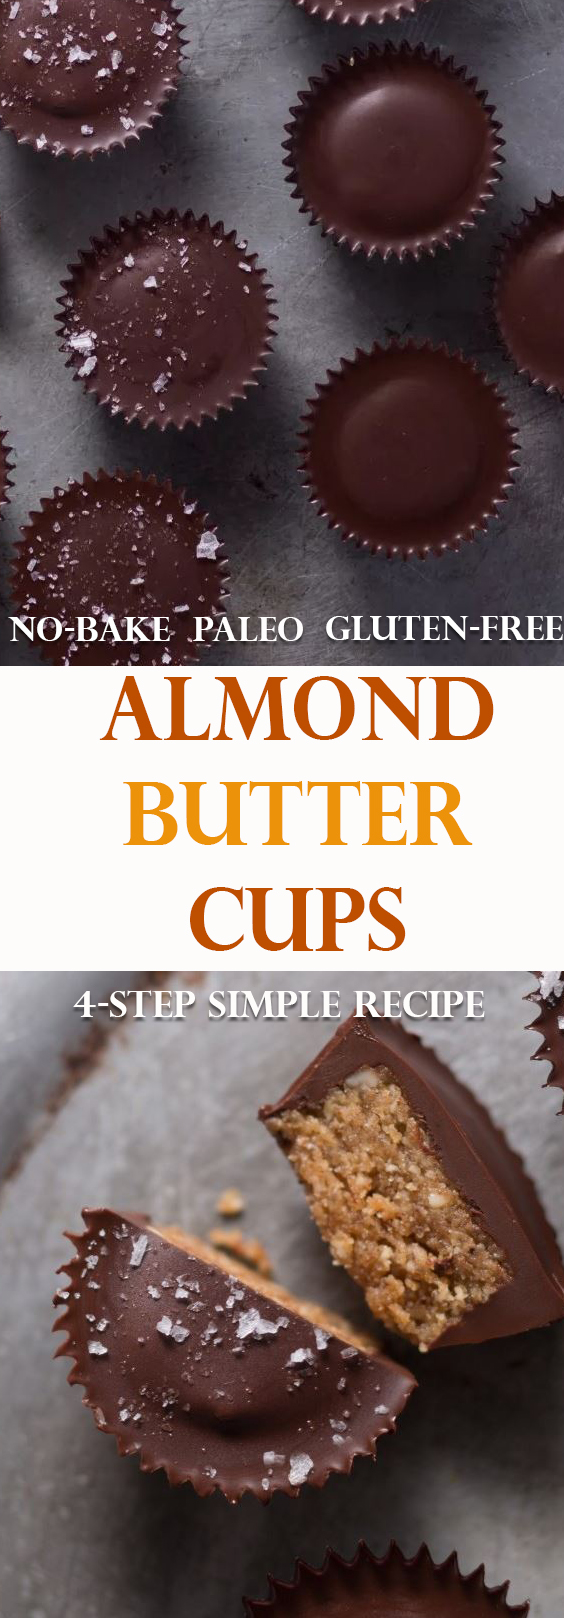 No-Bake, Paleo, Gluten-Free, Almond Butter Cups, 4-Step Simple Recipe.